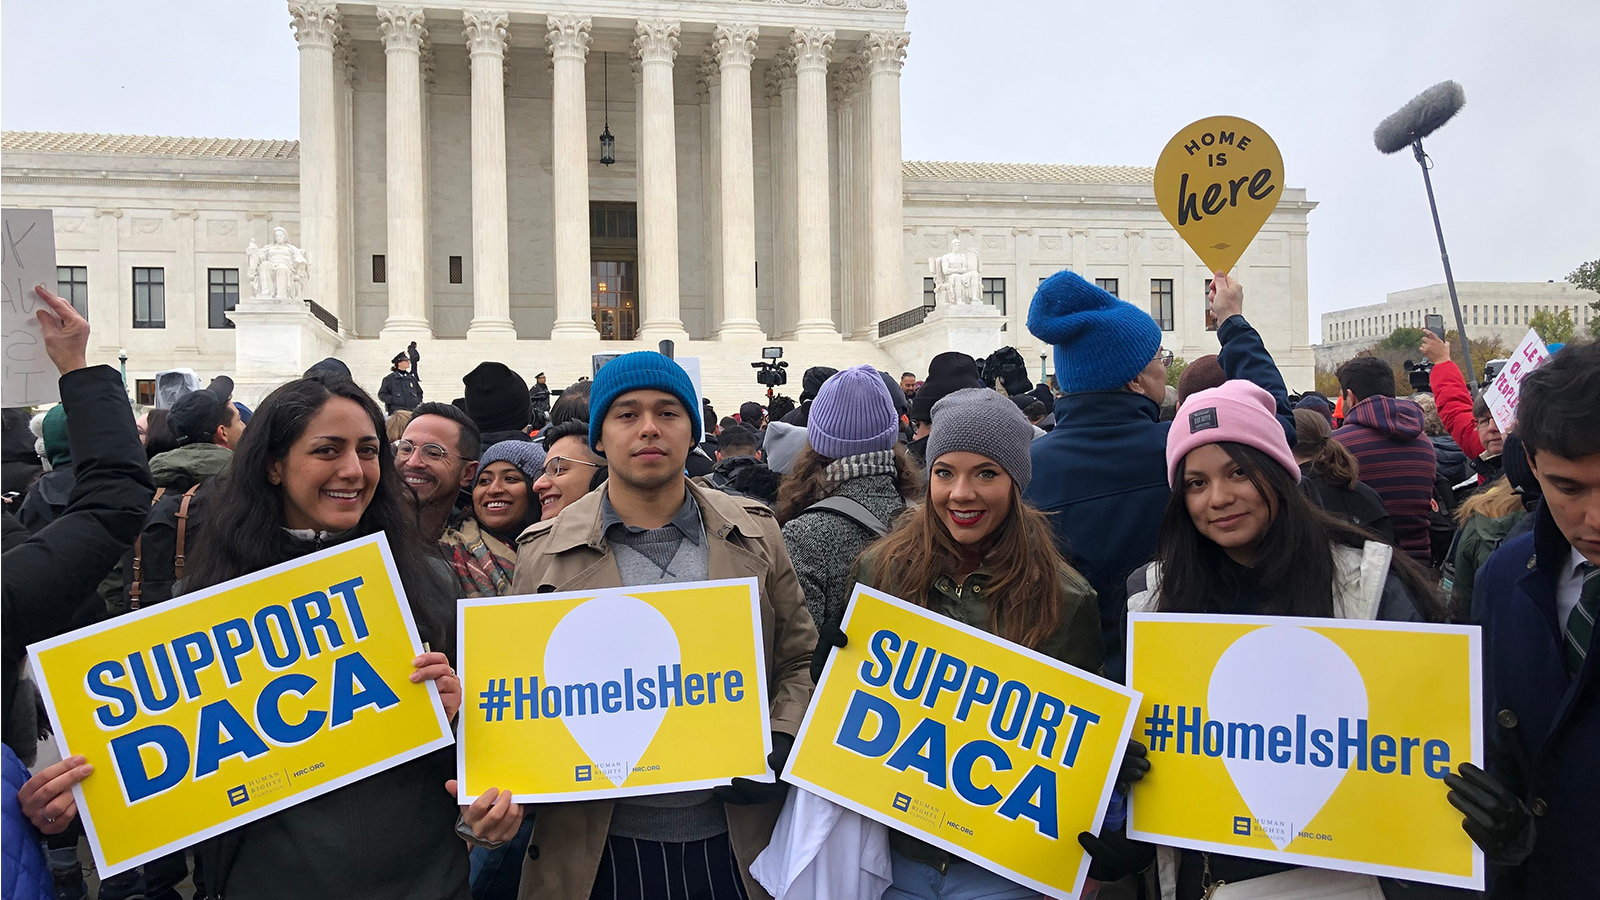 Human Rights Campaign Applauds Supreme Court Ruling on DACA